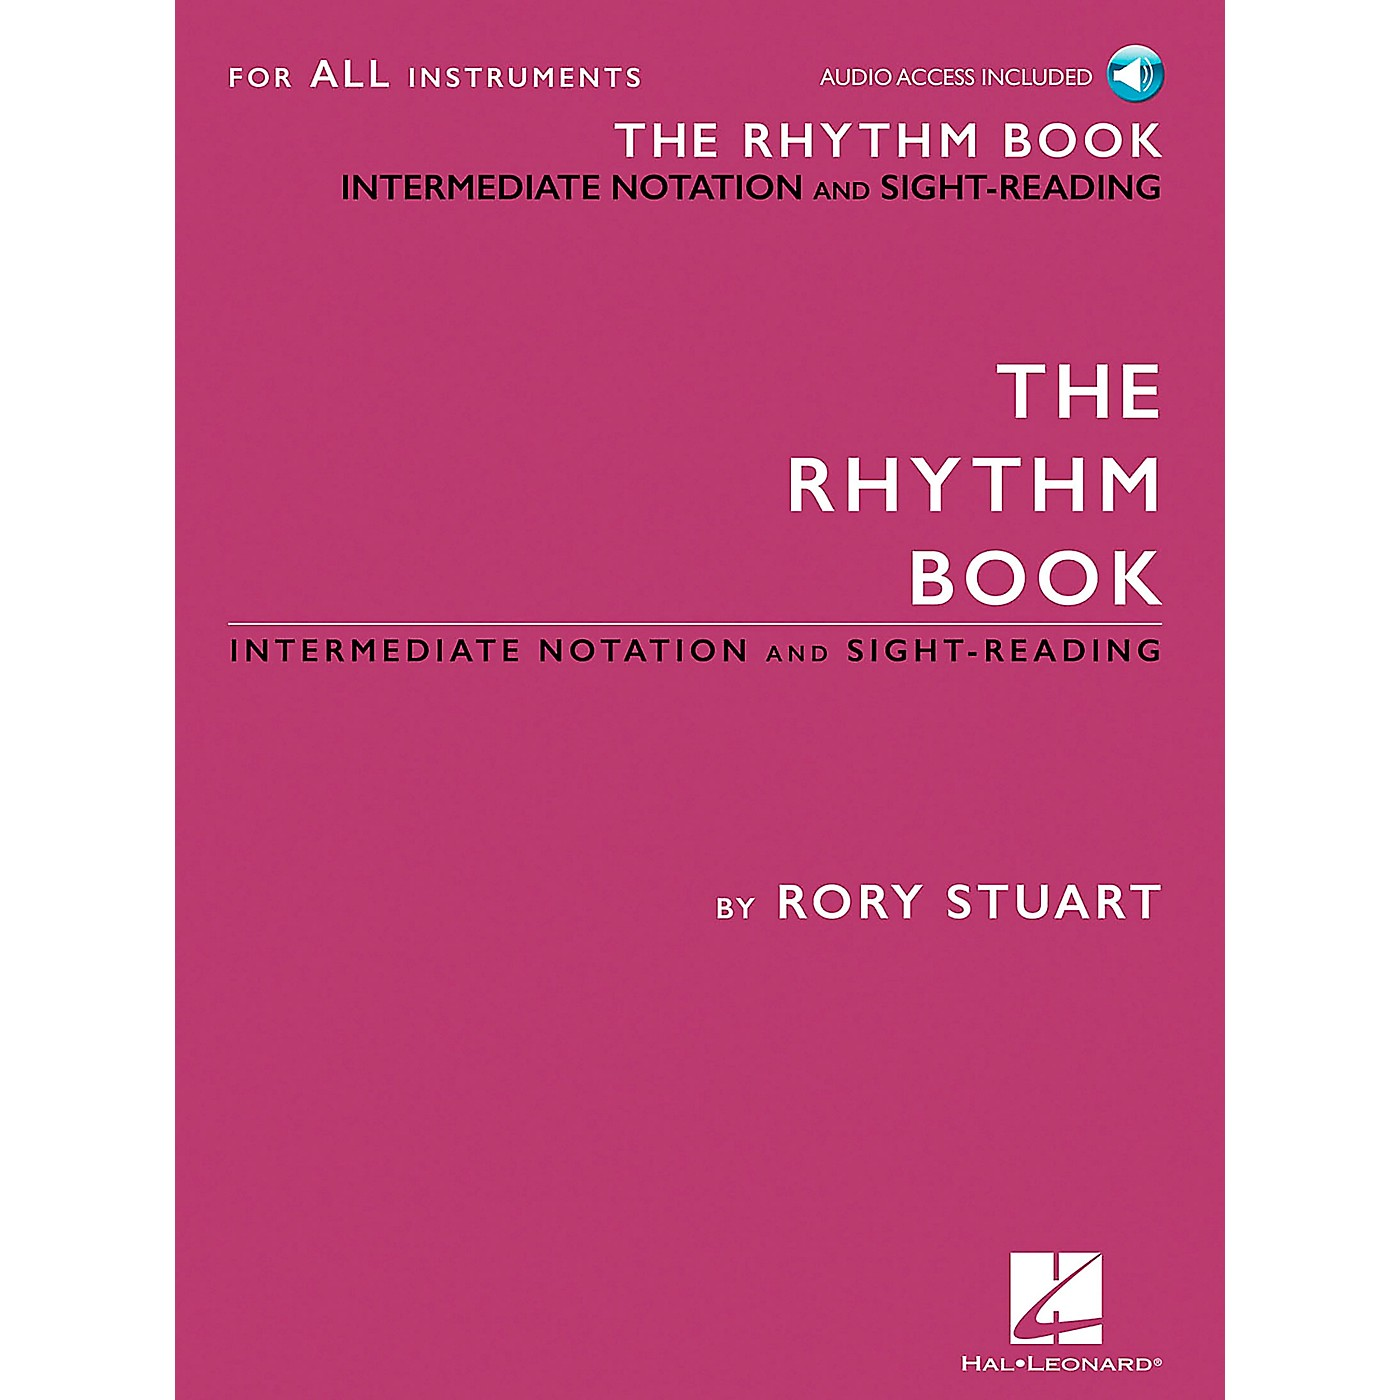 Hal Leonard The Rhythm Book - Intermediate Notation and Sight-Reading for All Instruments thumbnail